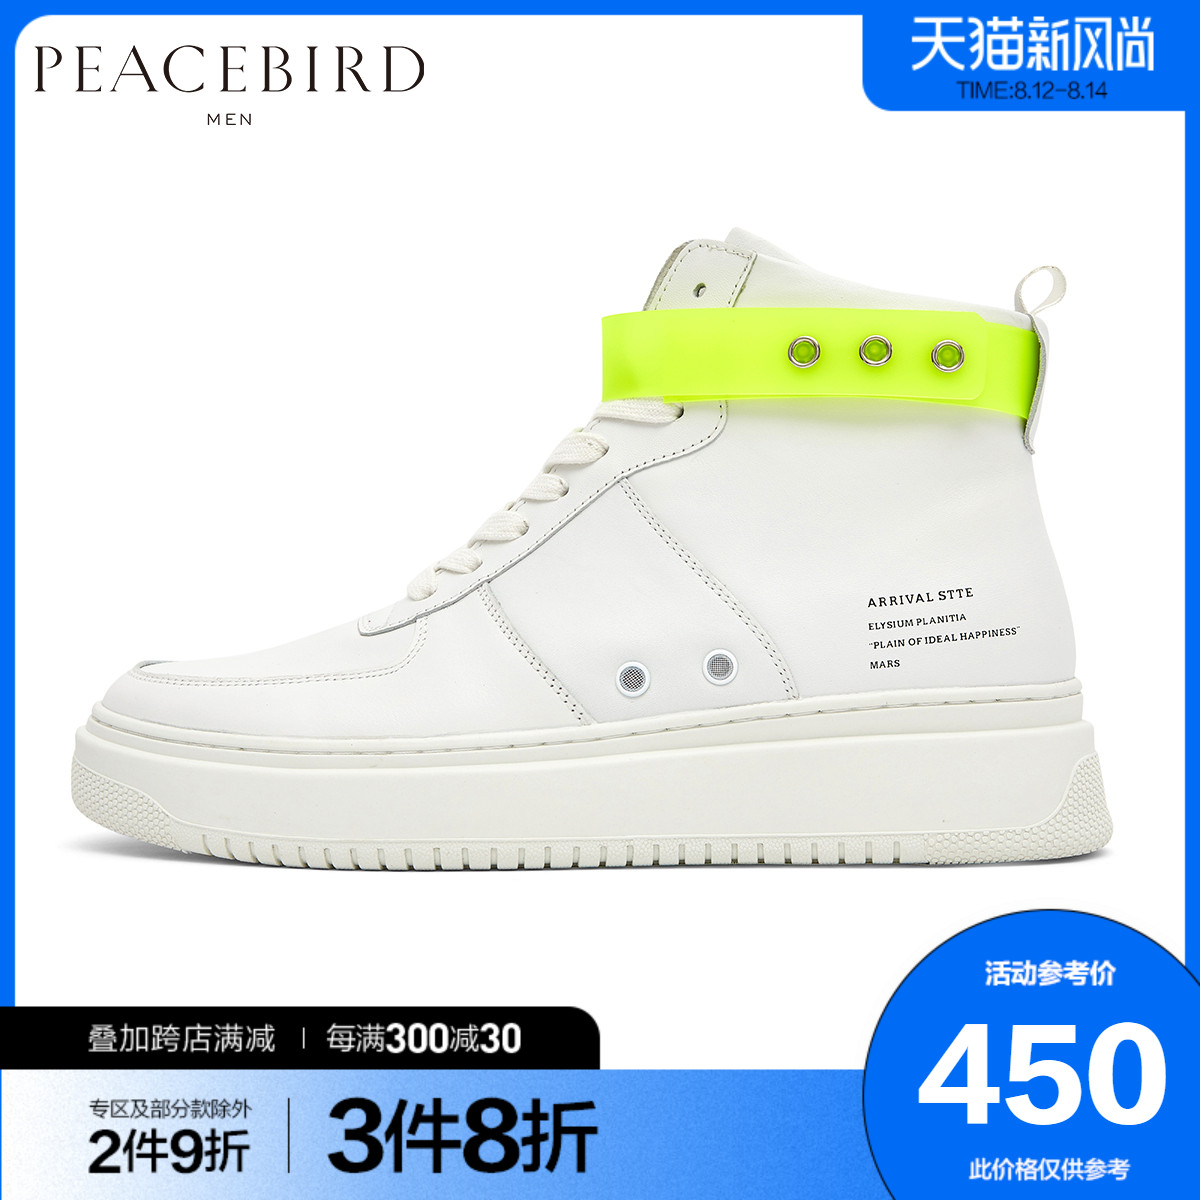 Taipingniao men's new spring high Gang men's white trend casual men's shoes fashion trend board shoes byzd91138